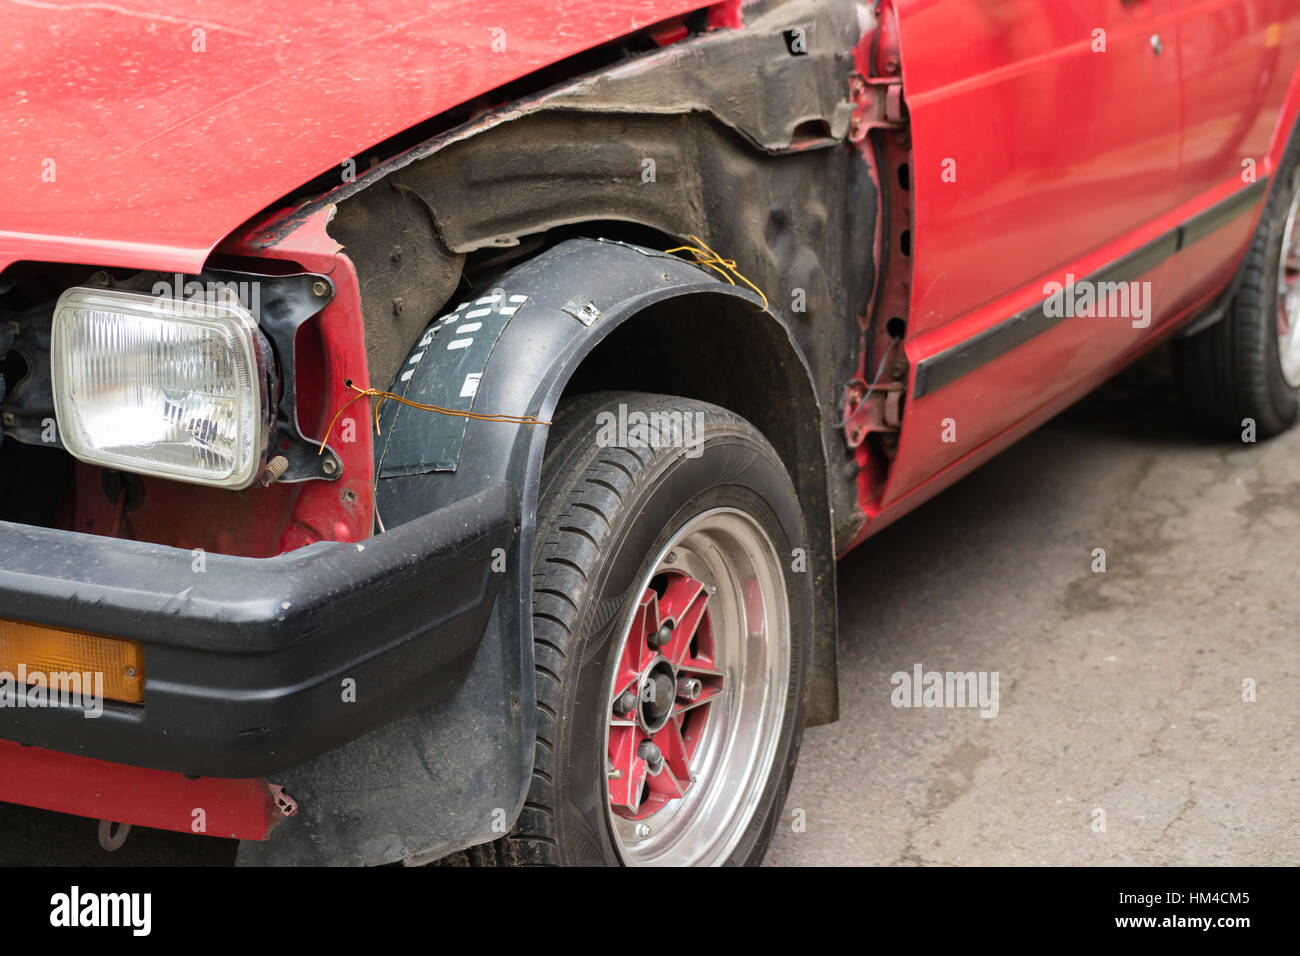 Damaged old red car without body parts Stock Photo: 132863477 - Alamy